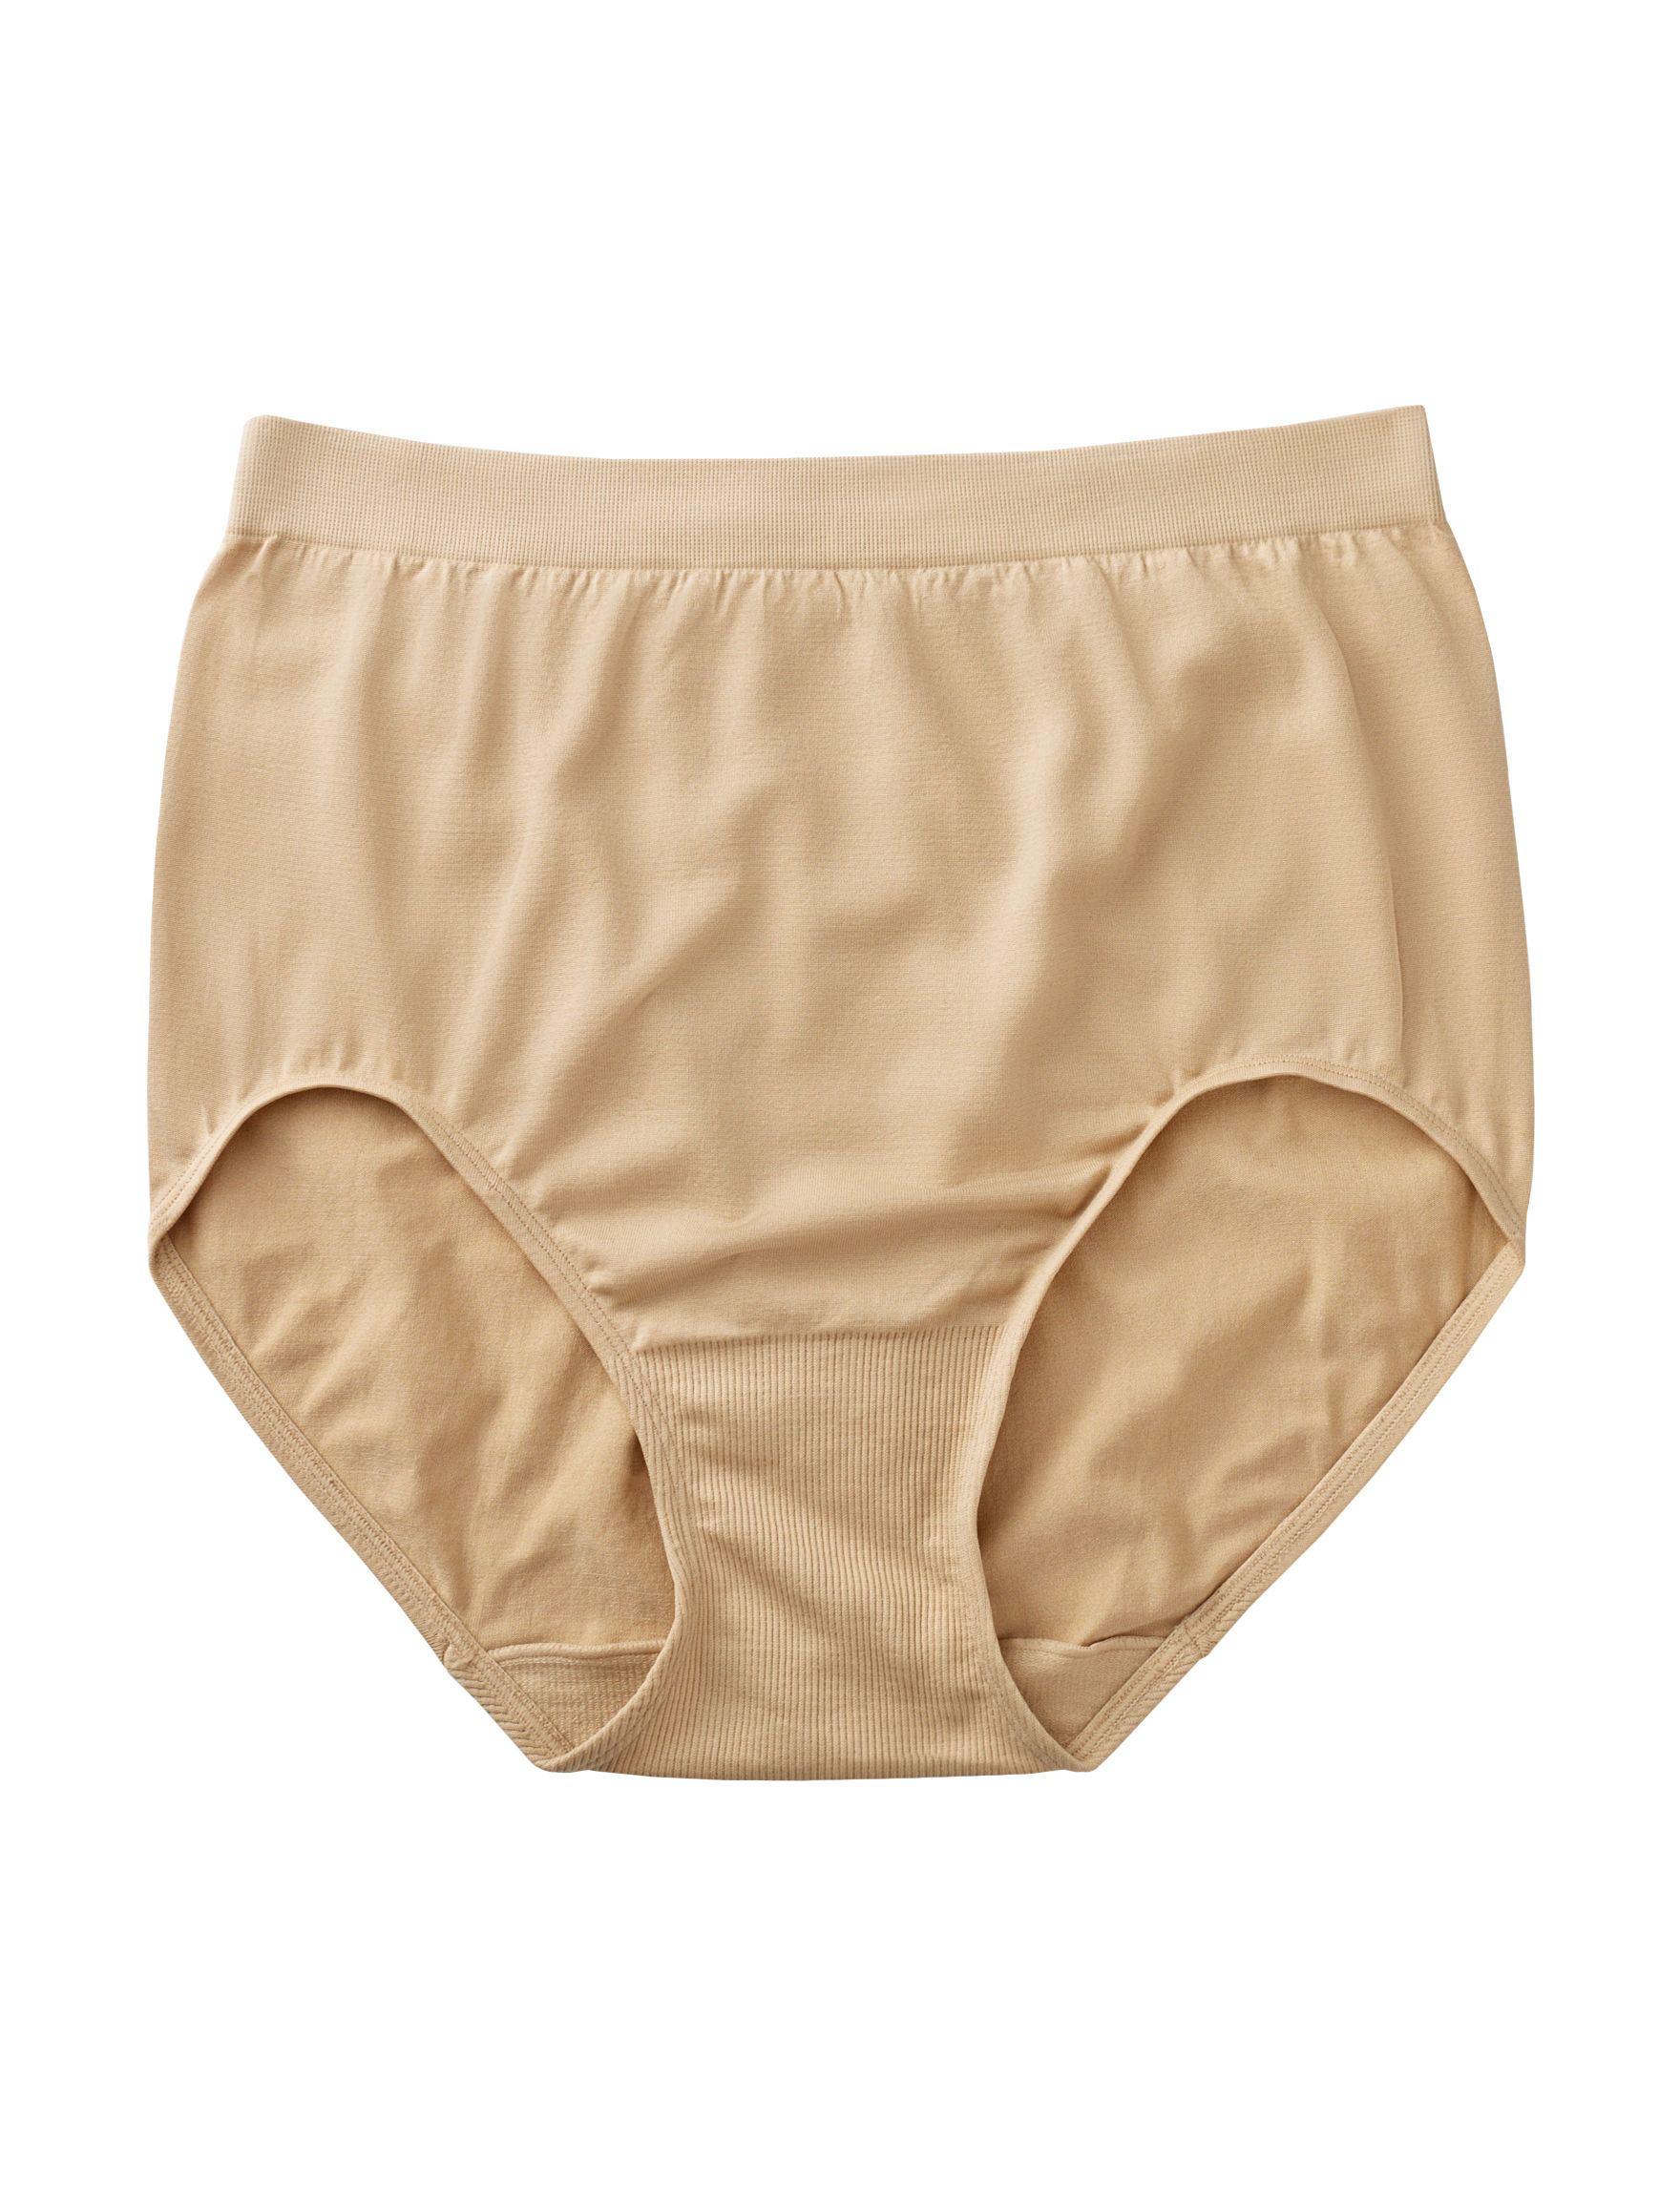 Vanity Fair Beige Panties Briefs